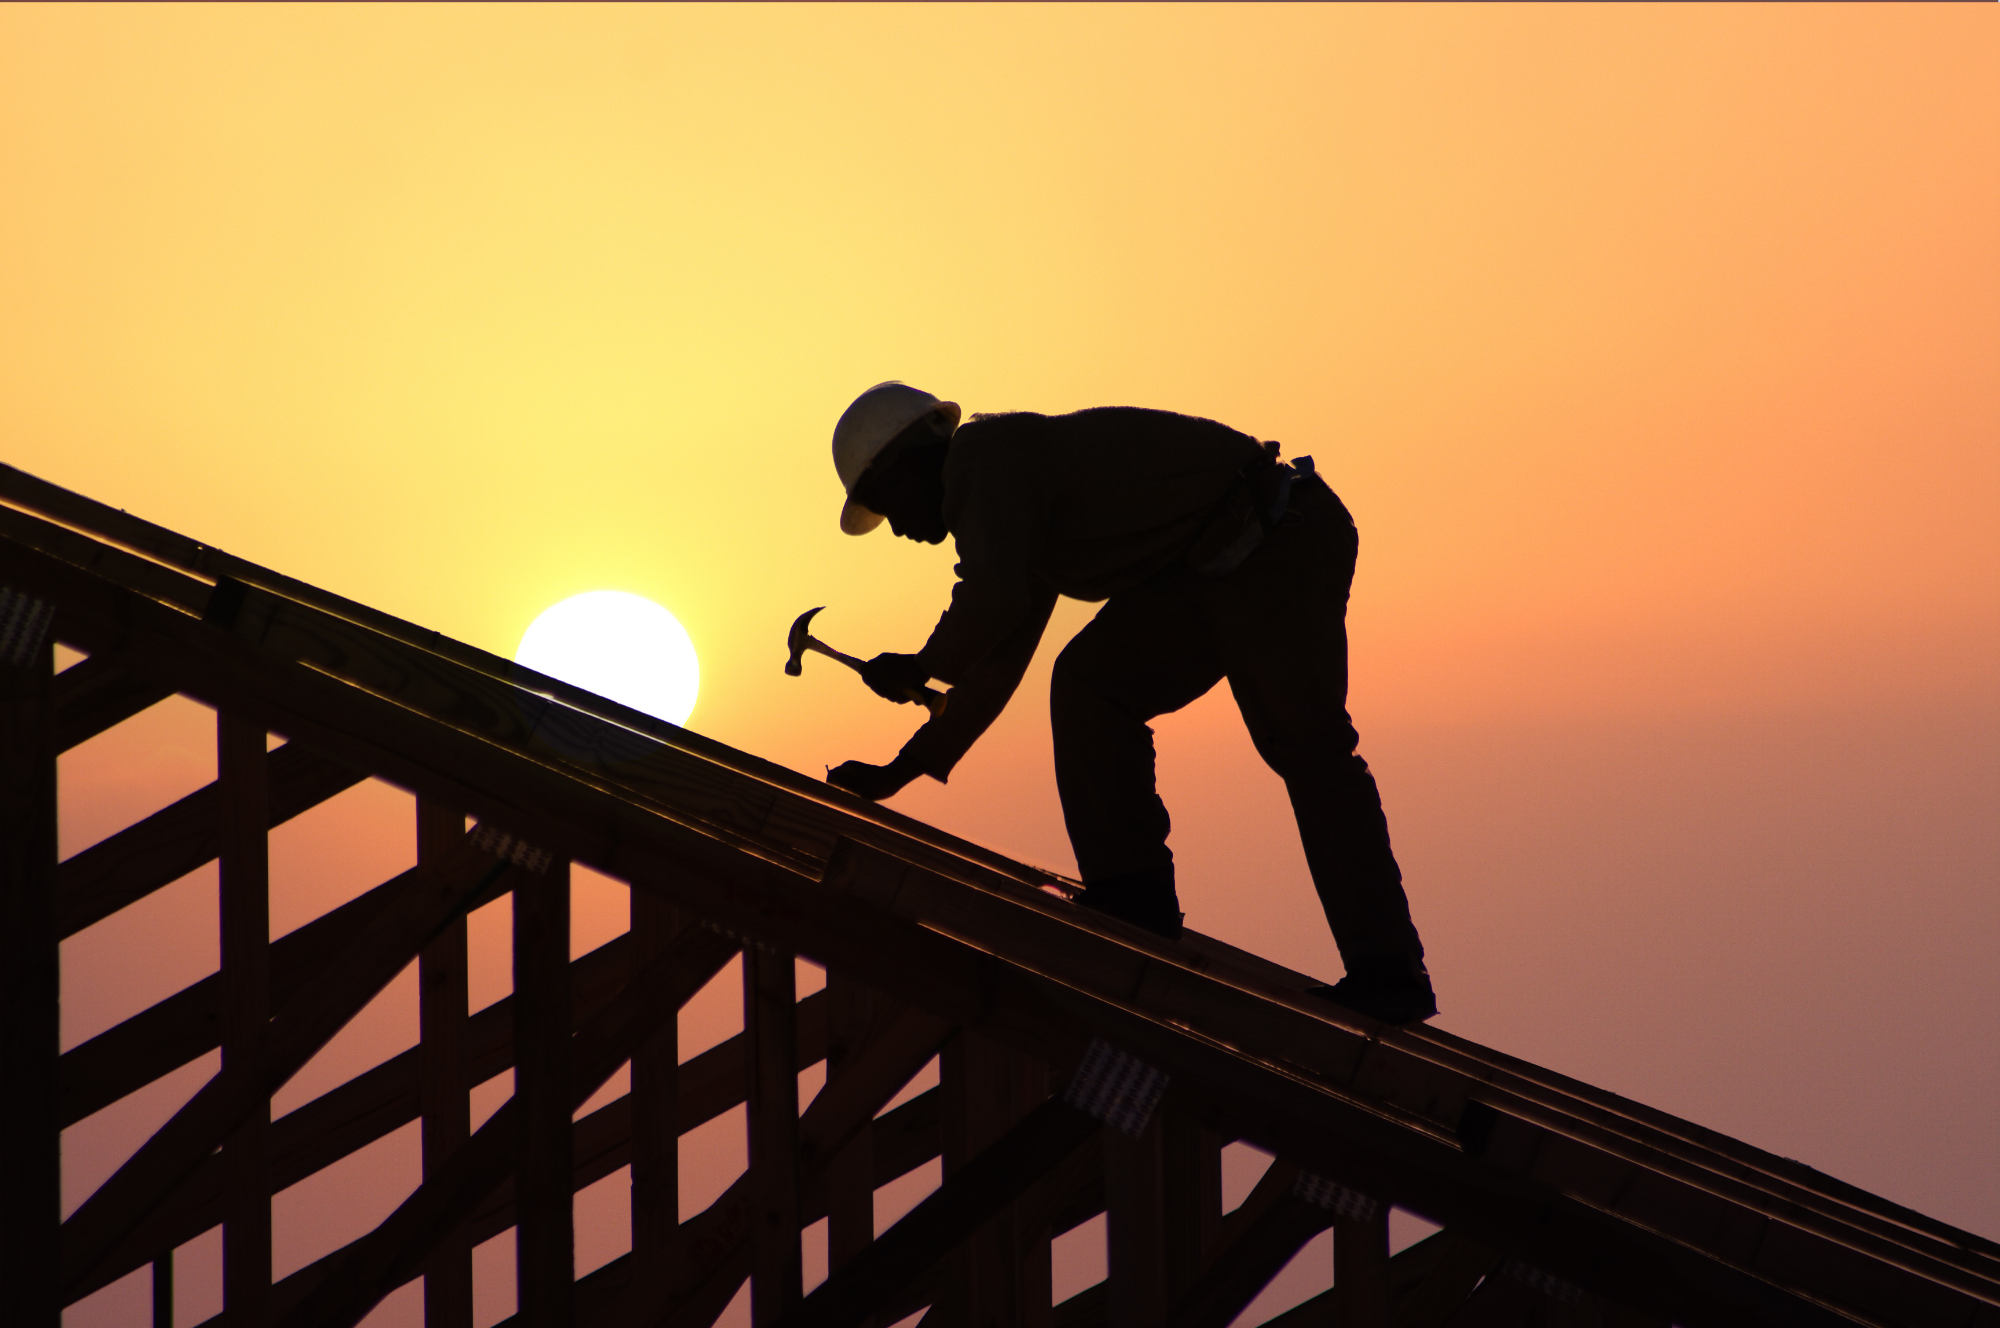 new construction roofing worker on top of house at sunset